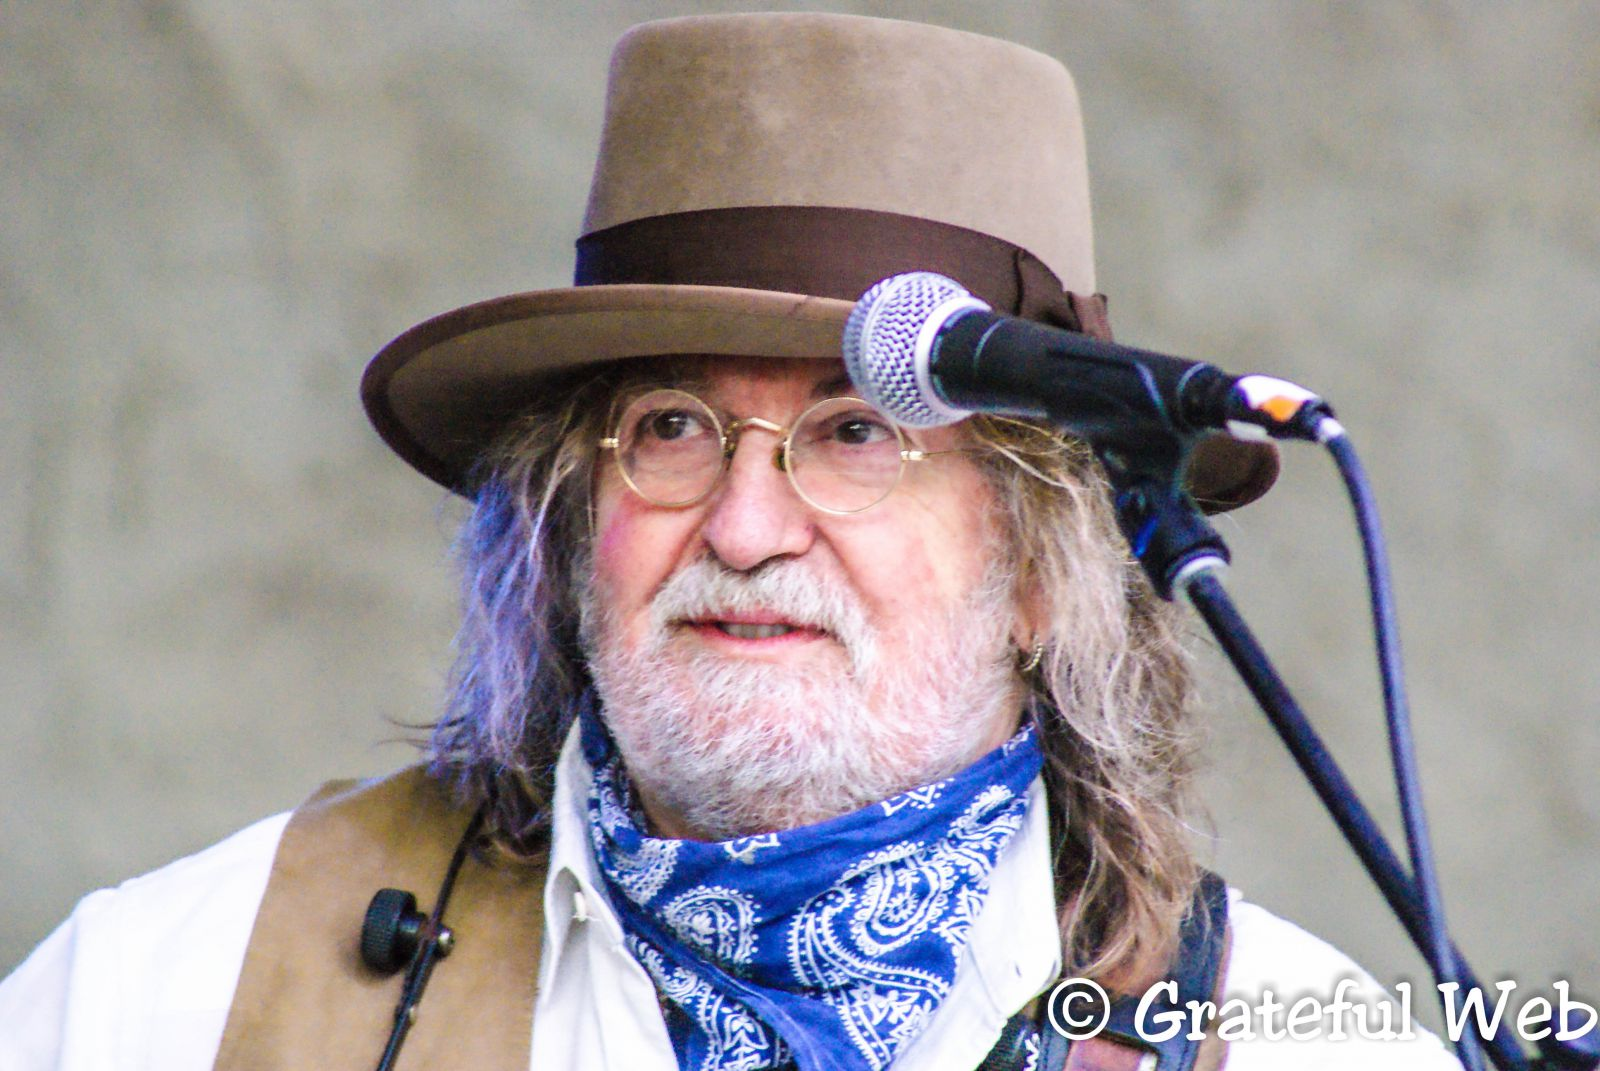 Ray Wylie Hubbard @ The Bridge | Review